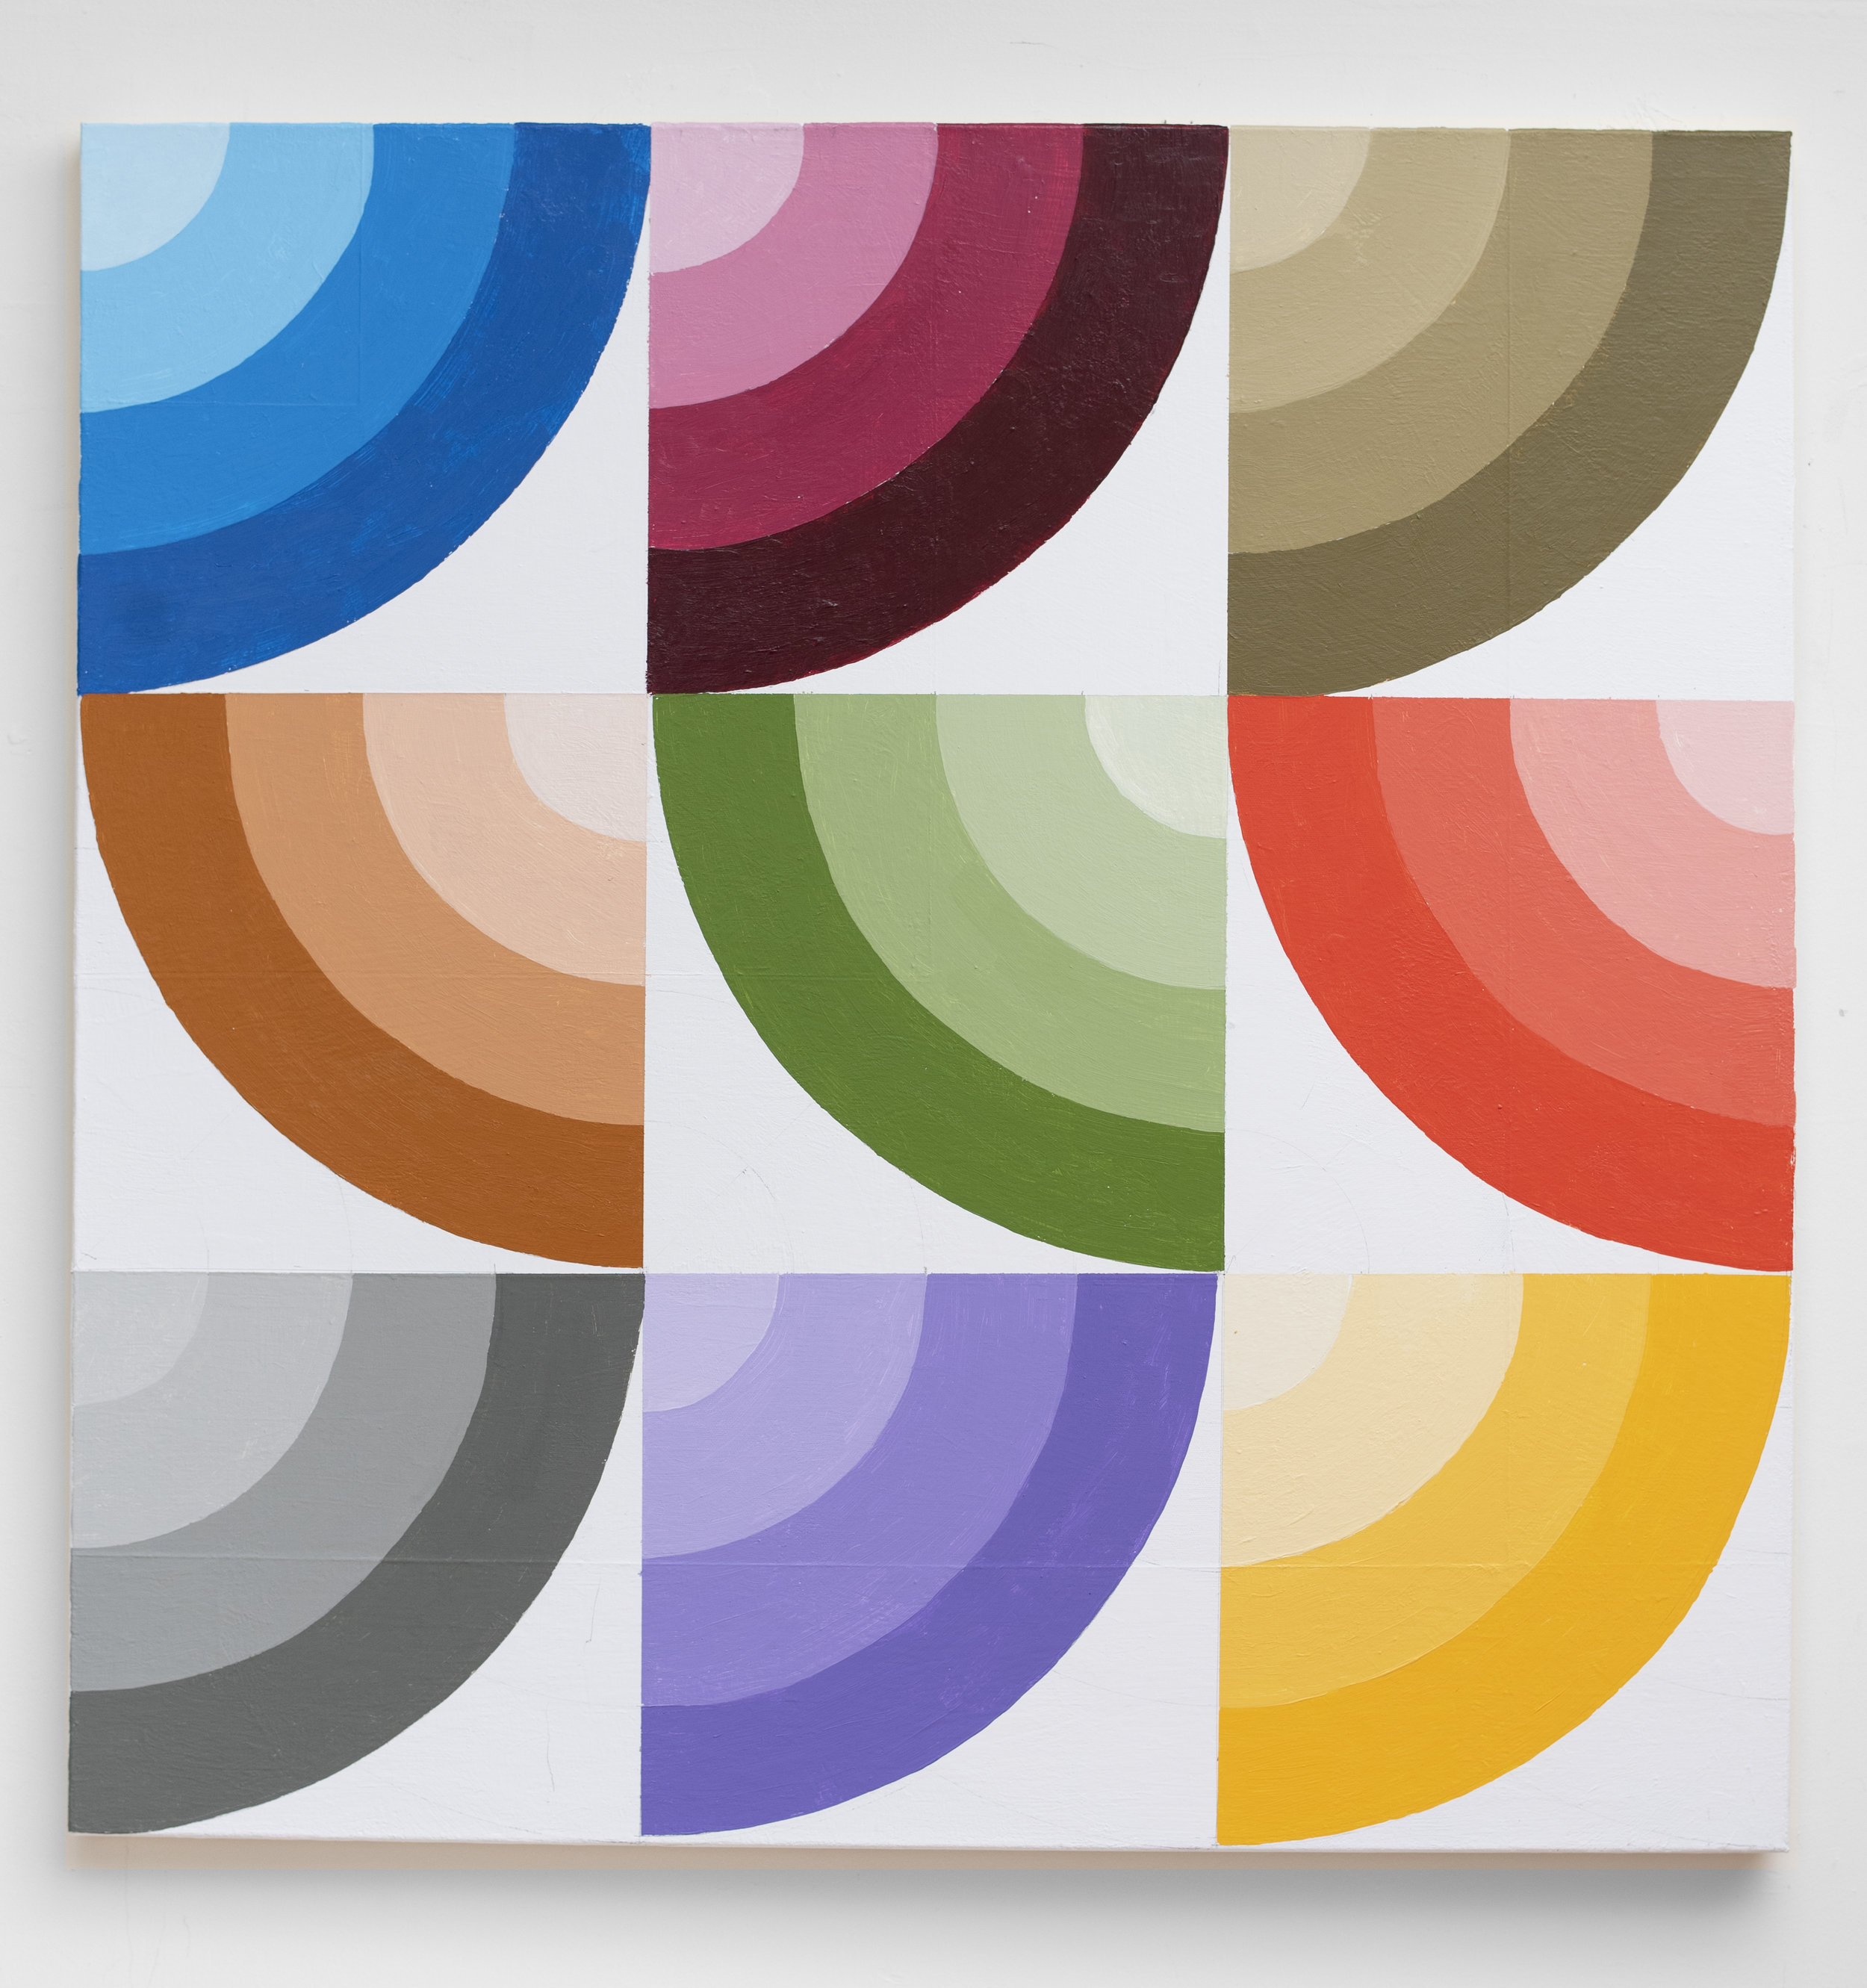 Curves in 6 colors